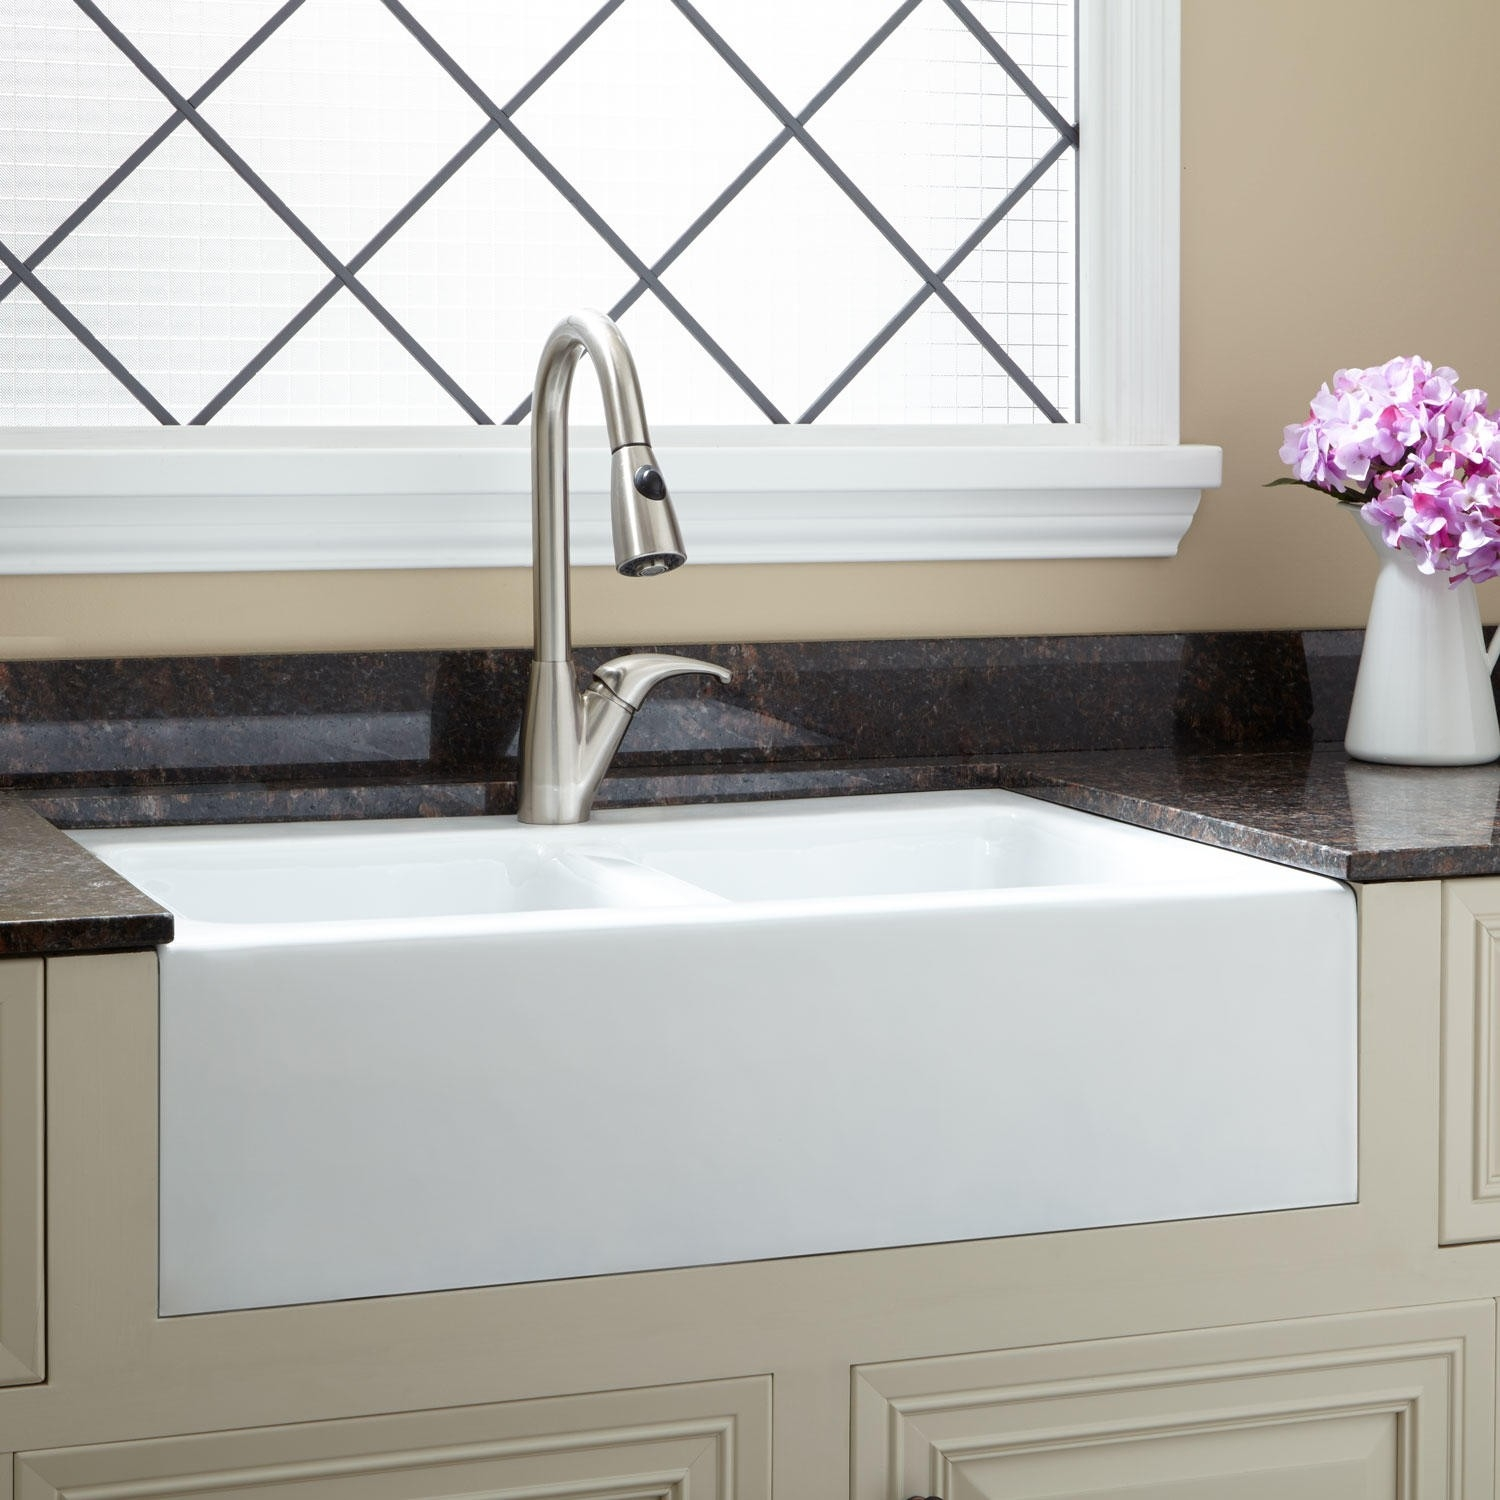 Ideas, farmhouse sink faucet graphicdesignsco throughout proportions 1500 x 1500  .